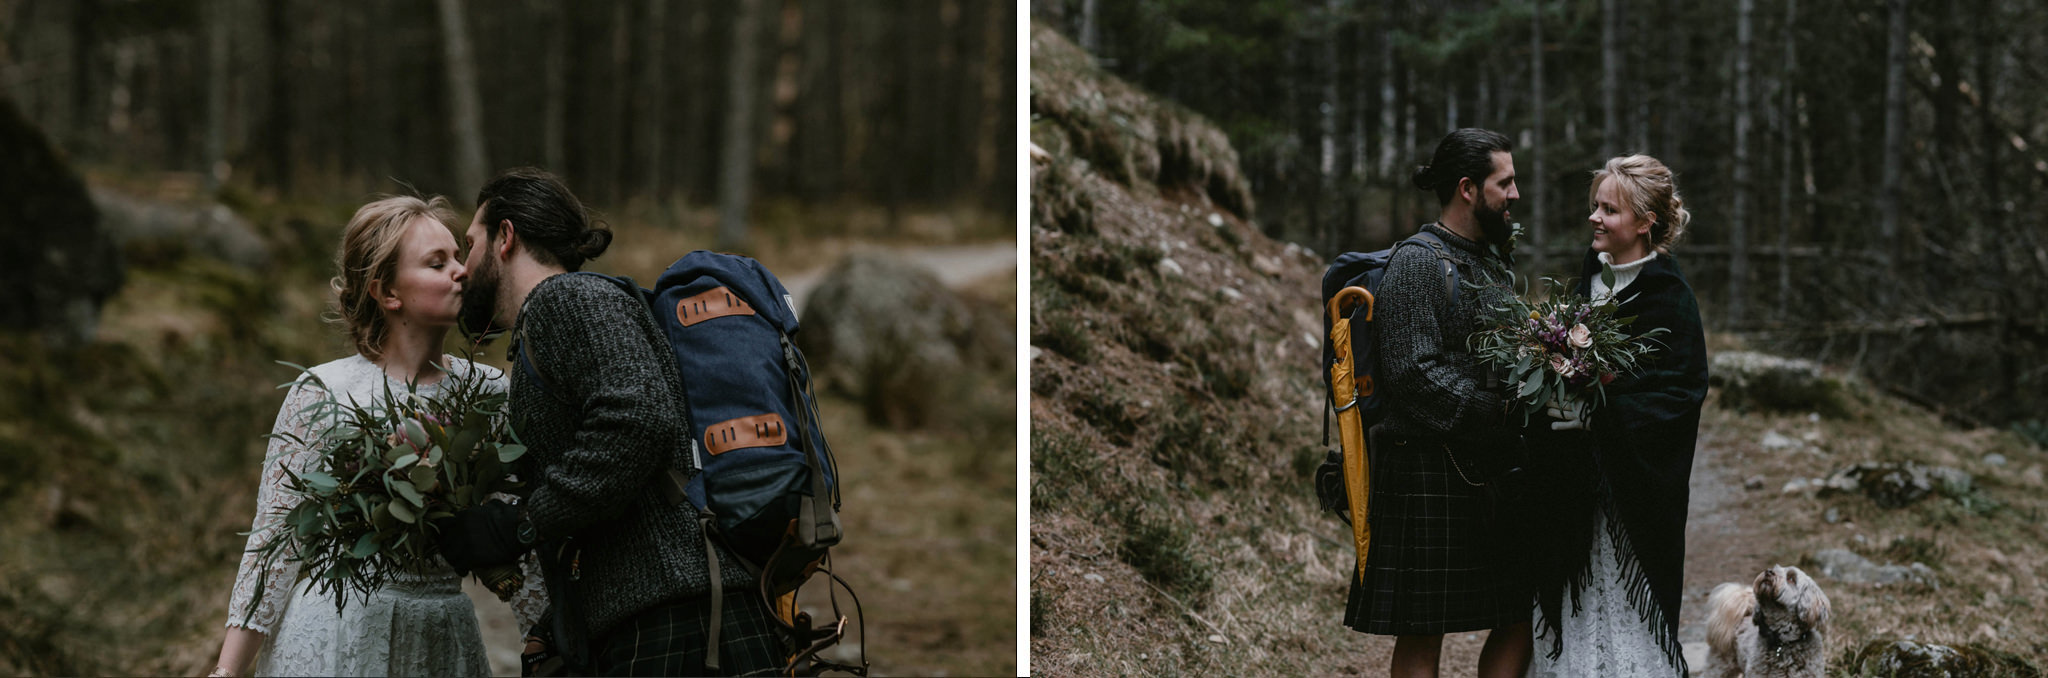 Elope in Scotland couple wearing rucksacks embrace in the woods